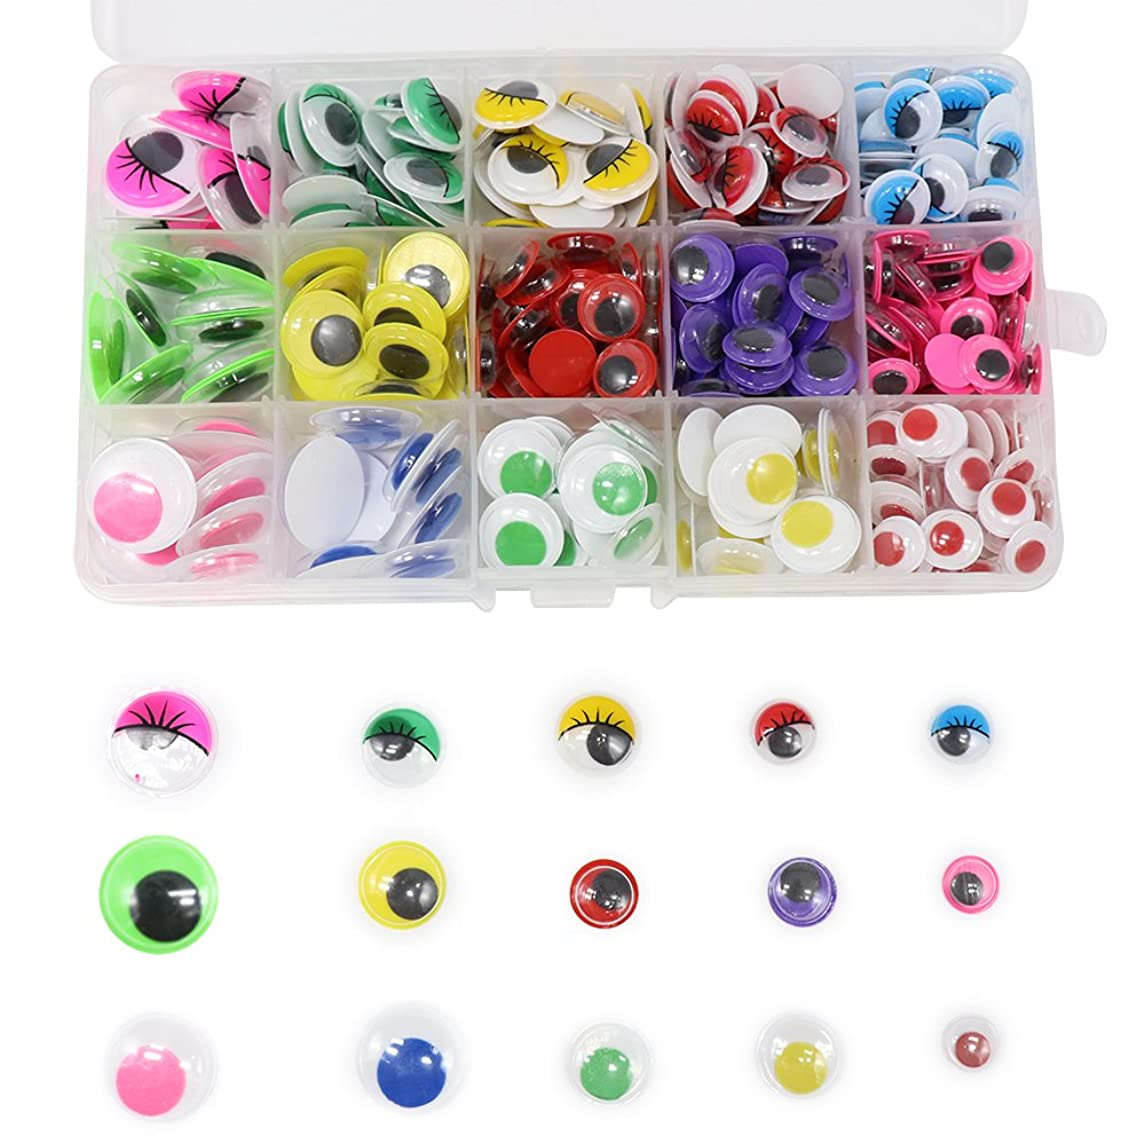 380pcs/bag 10-20mm without Self-adhesive wiggling toy eyes doll accessories